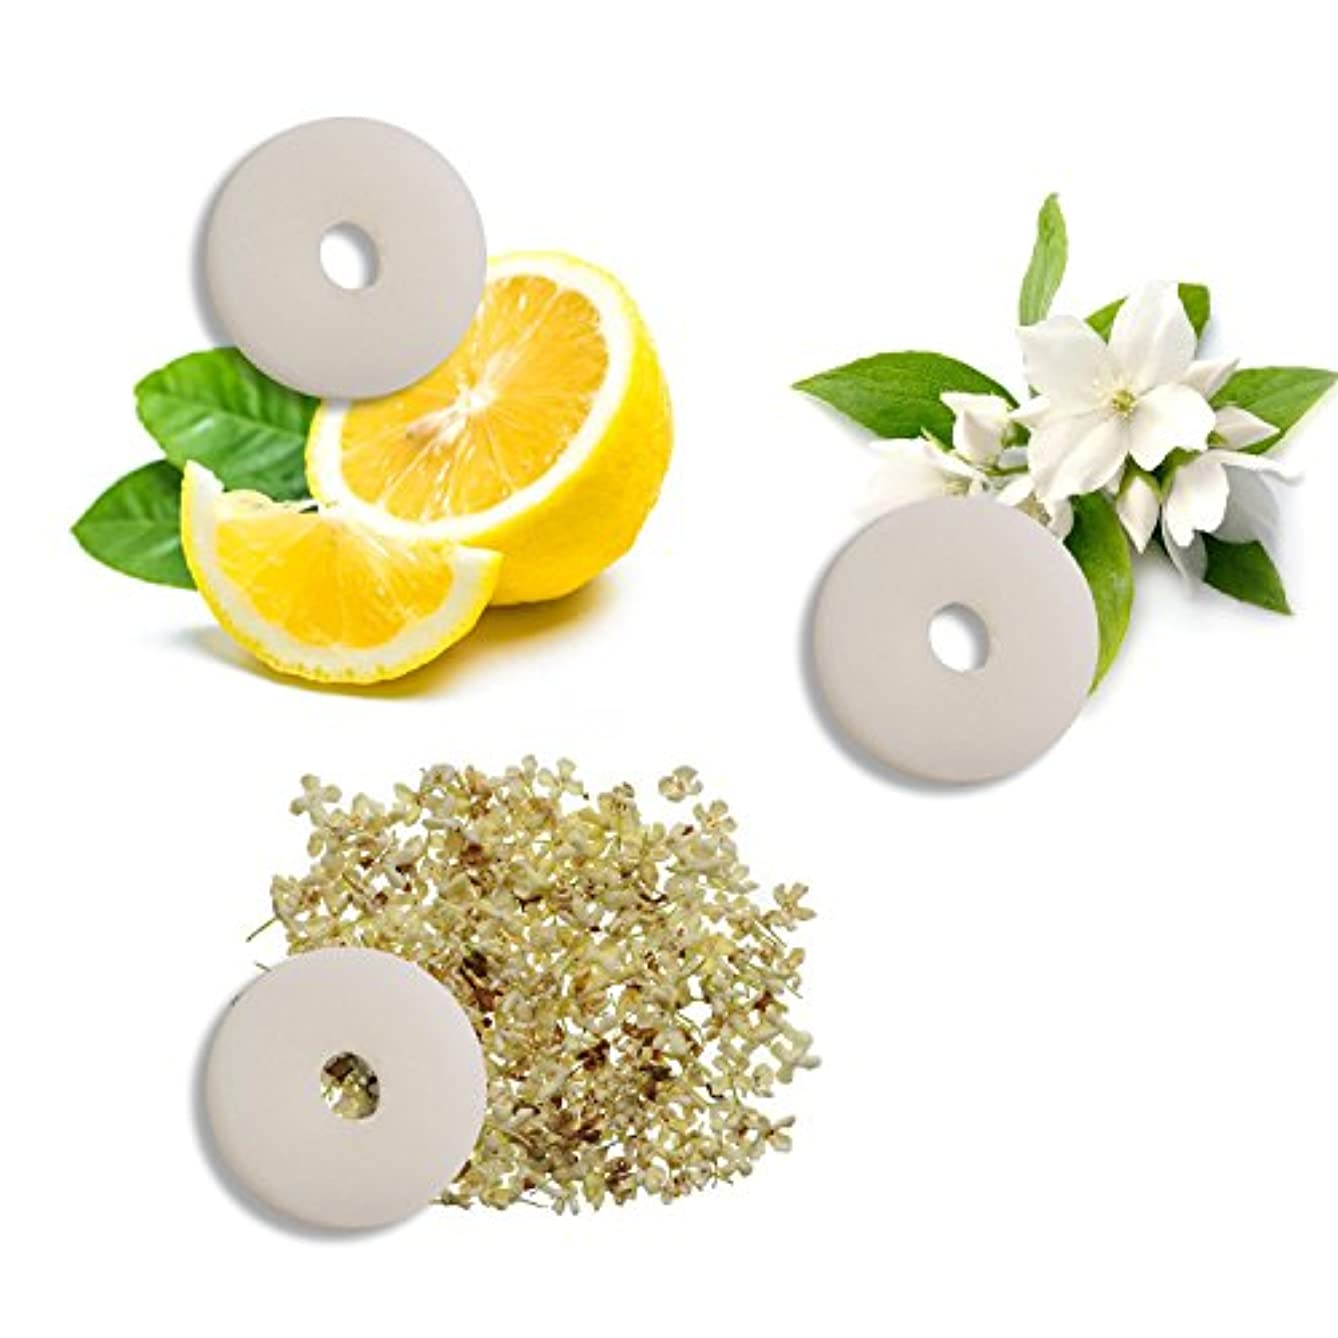 INSTEN 3-Piece Set Aroma Replacement Pads Refill Pad for Portable Fan Handheld USB Cooling Fan Table Fan with Stand, 27mm Diameter (Jasmine, Osmanthus, Lemon)